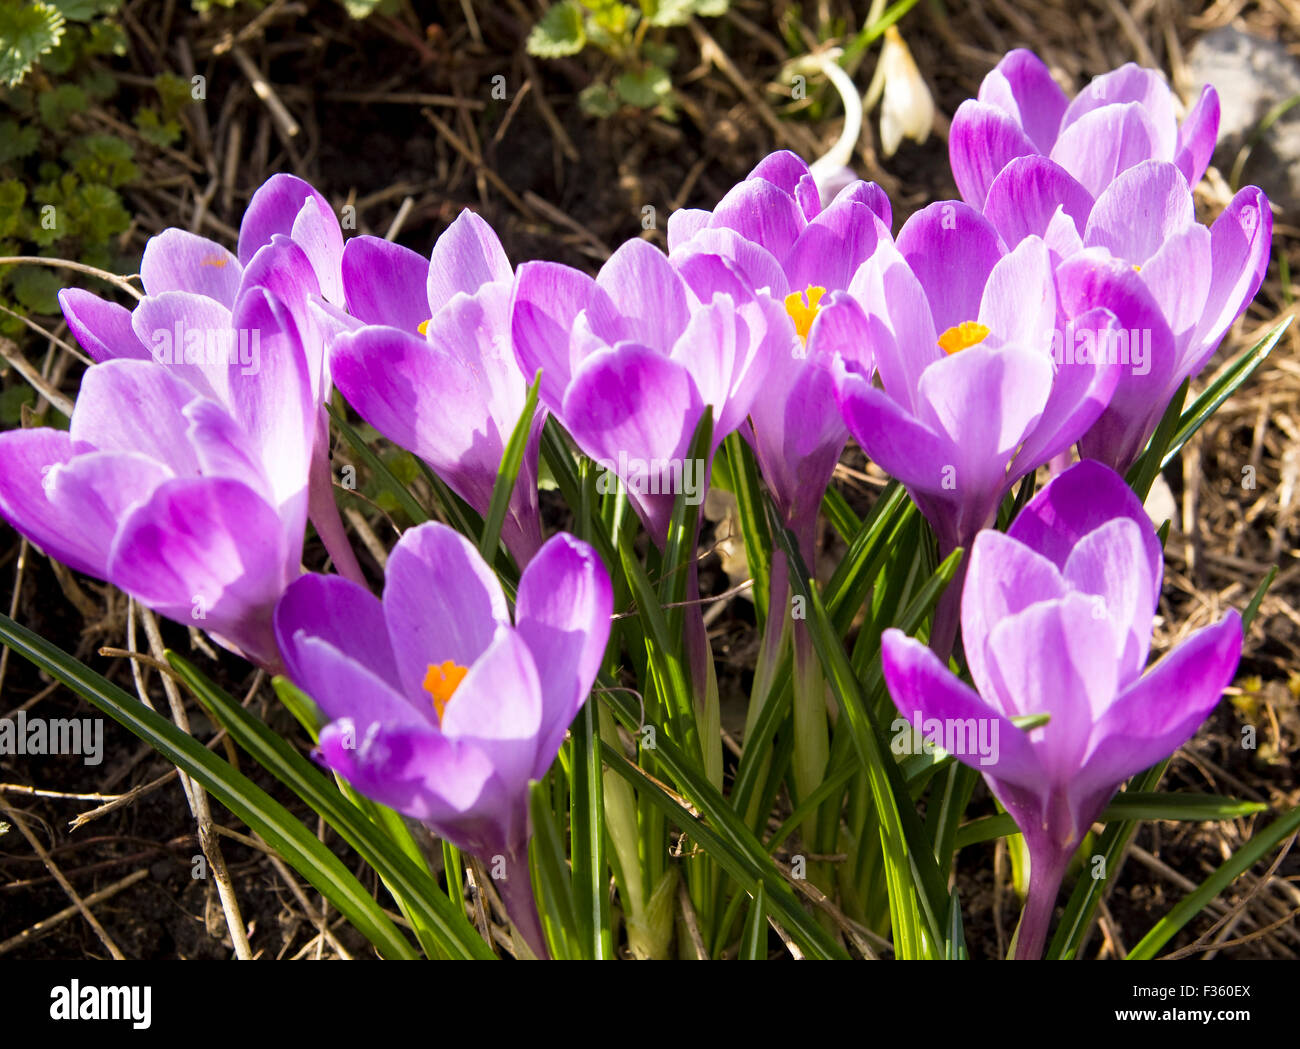 First Spring Flowers Crocuses Of Purple Colour On Ground Stock Photo